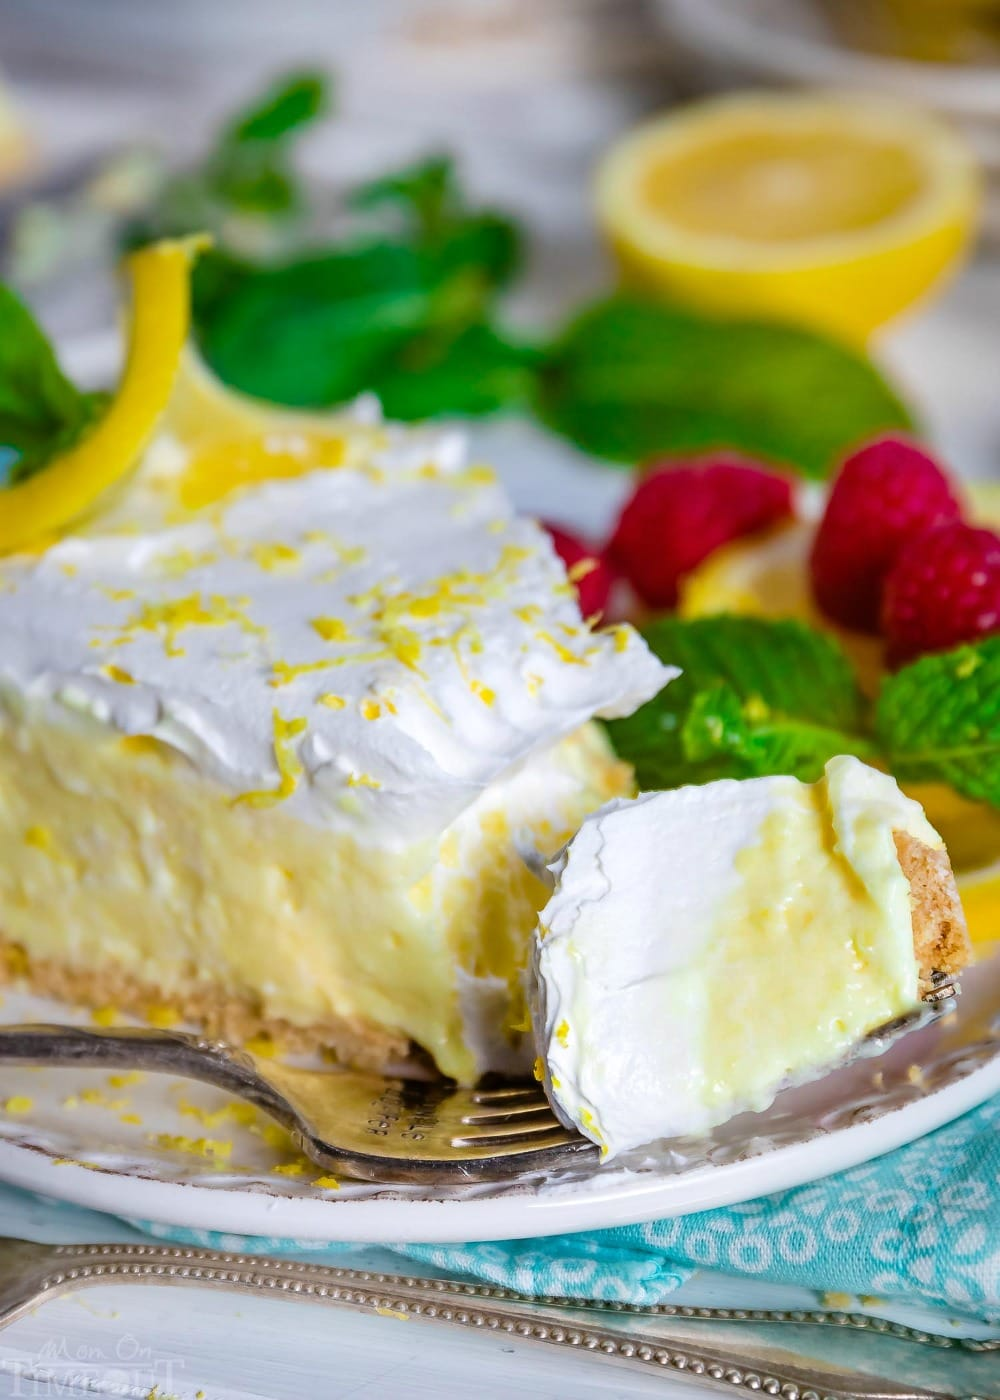 lemon-pie-slice-bite